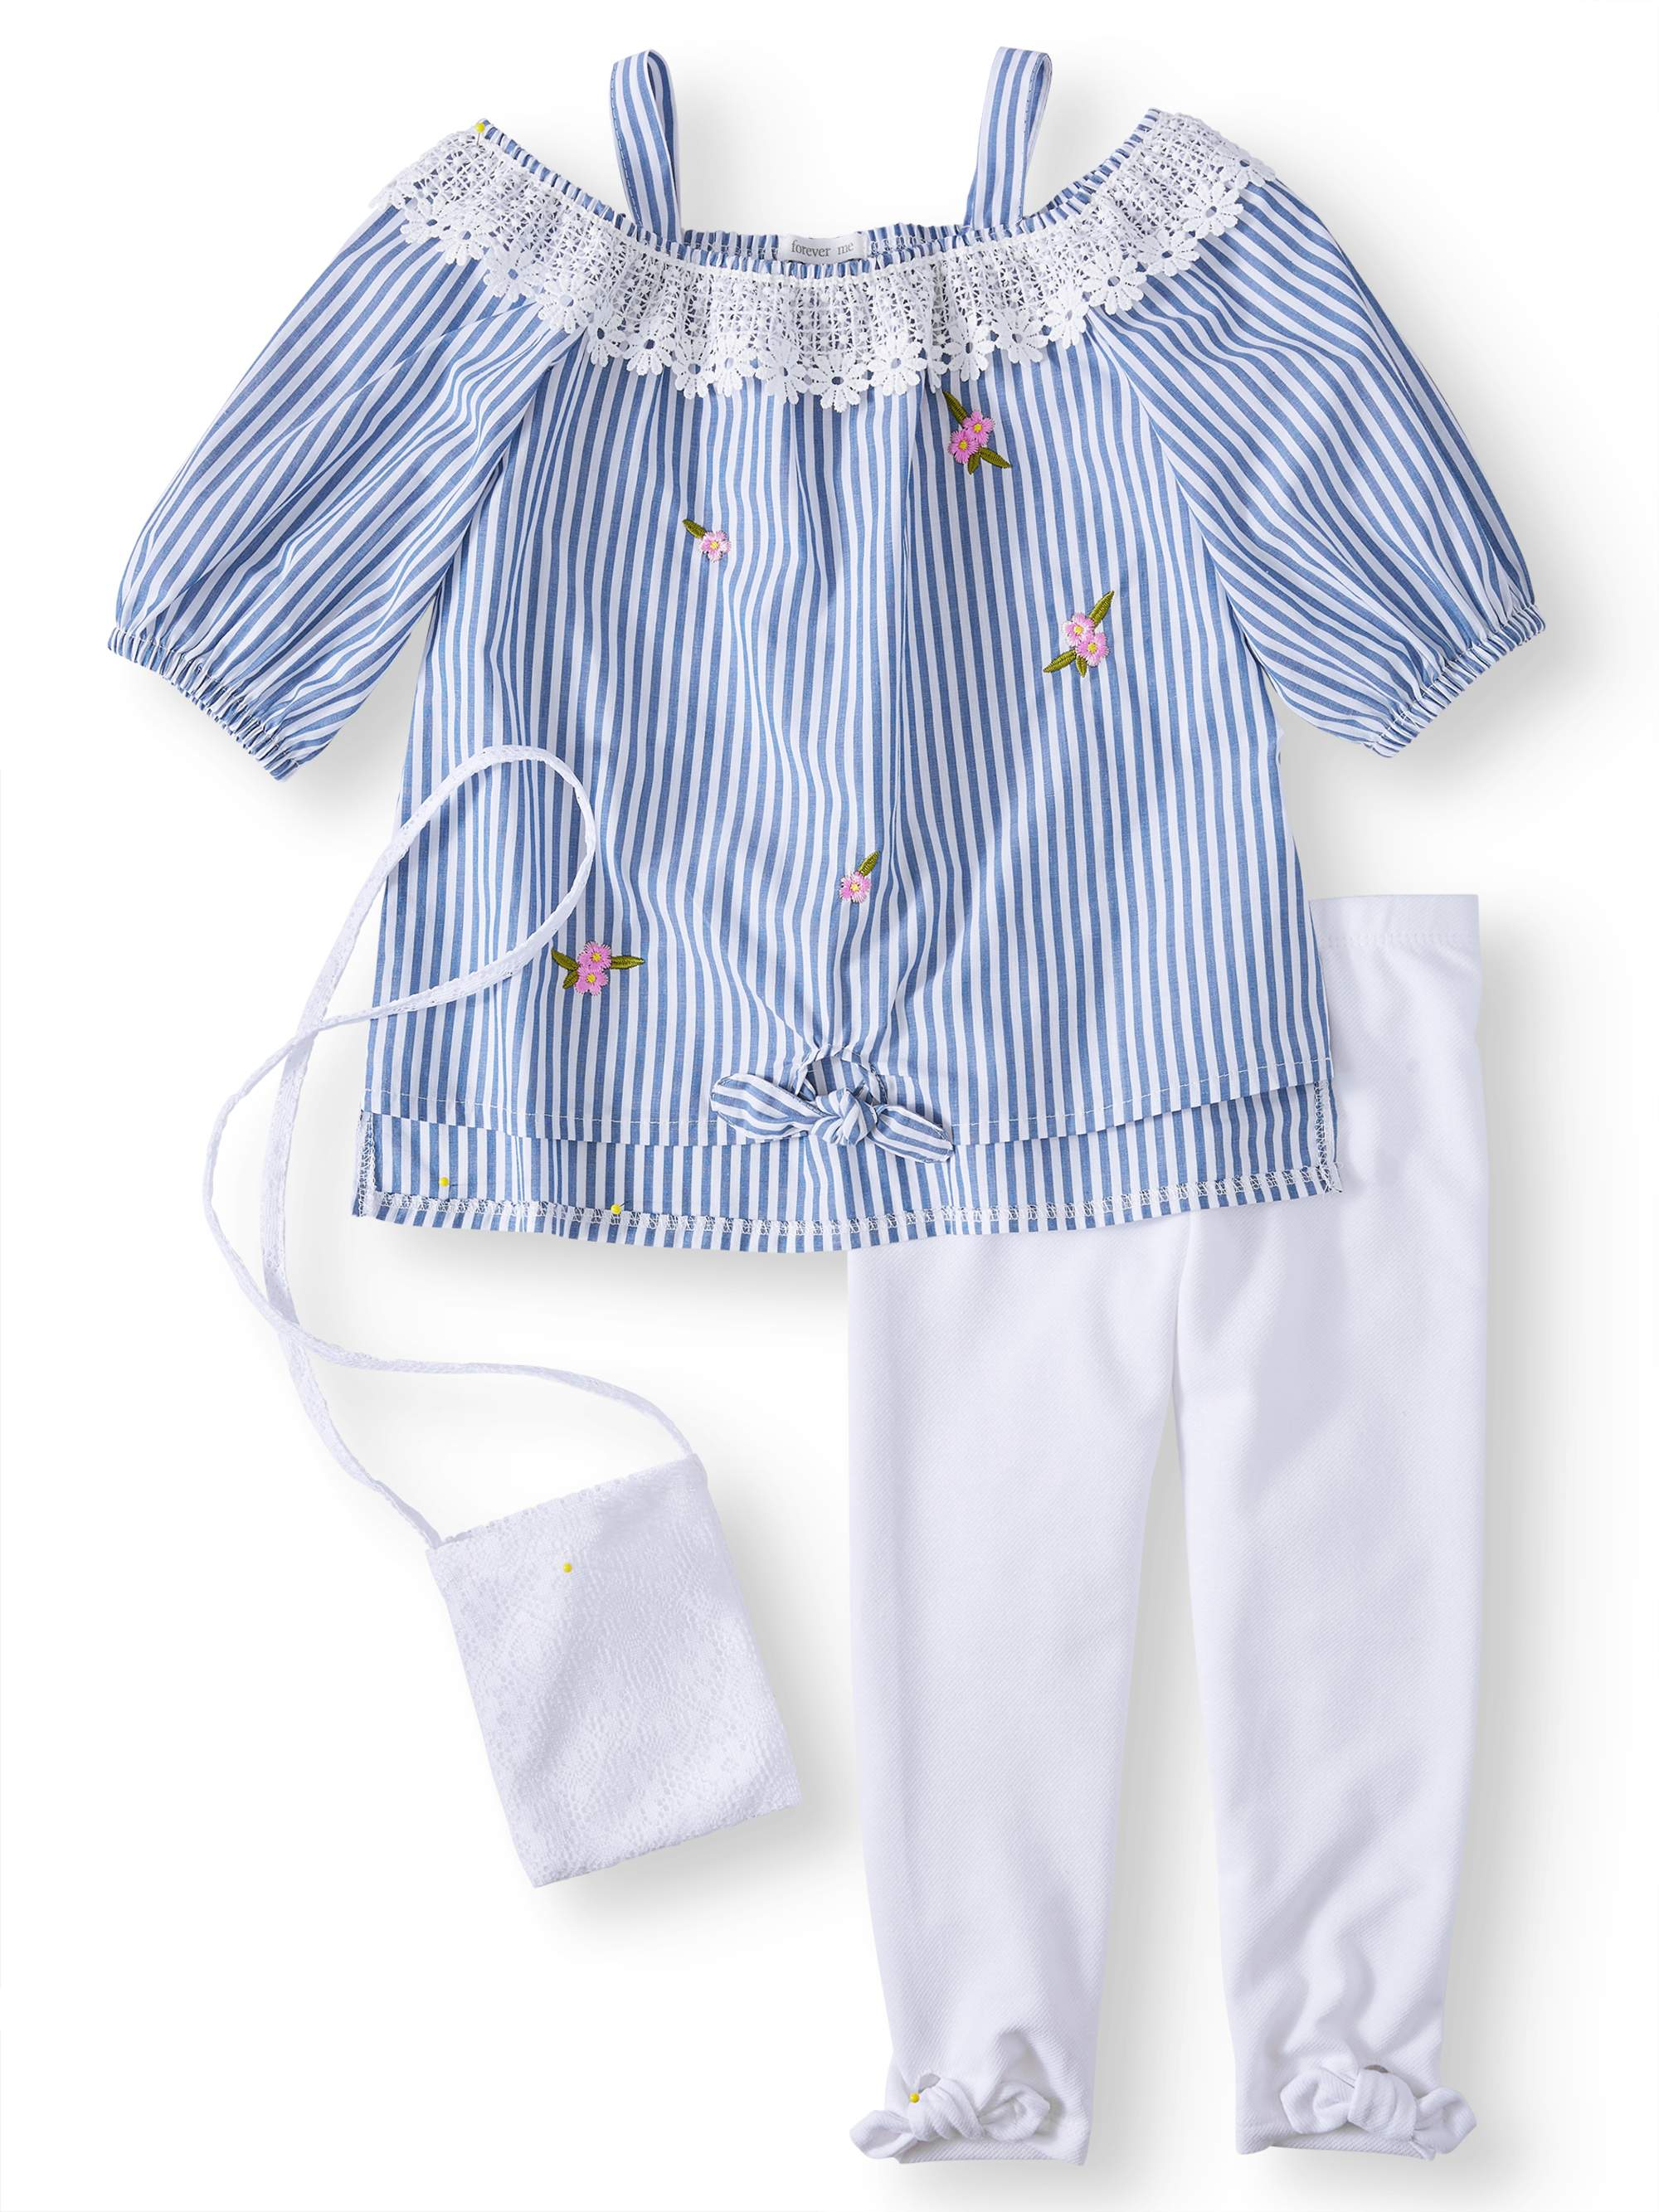 Embroidered Shirting Tunic and Legging, 2-Piece Outfit Set with Purse (Little Girls)